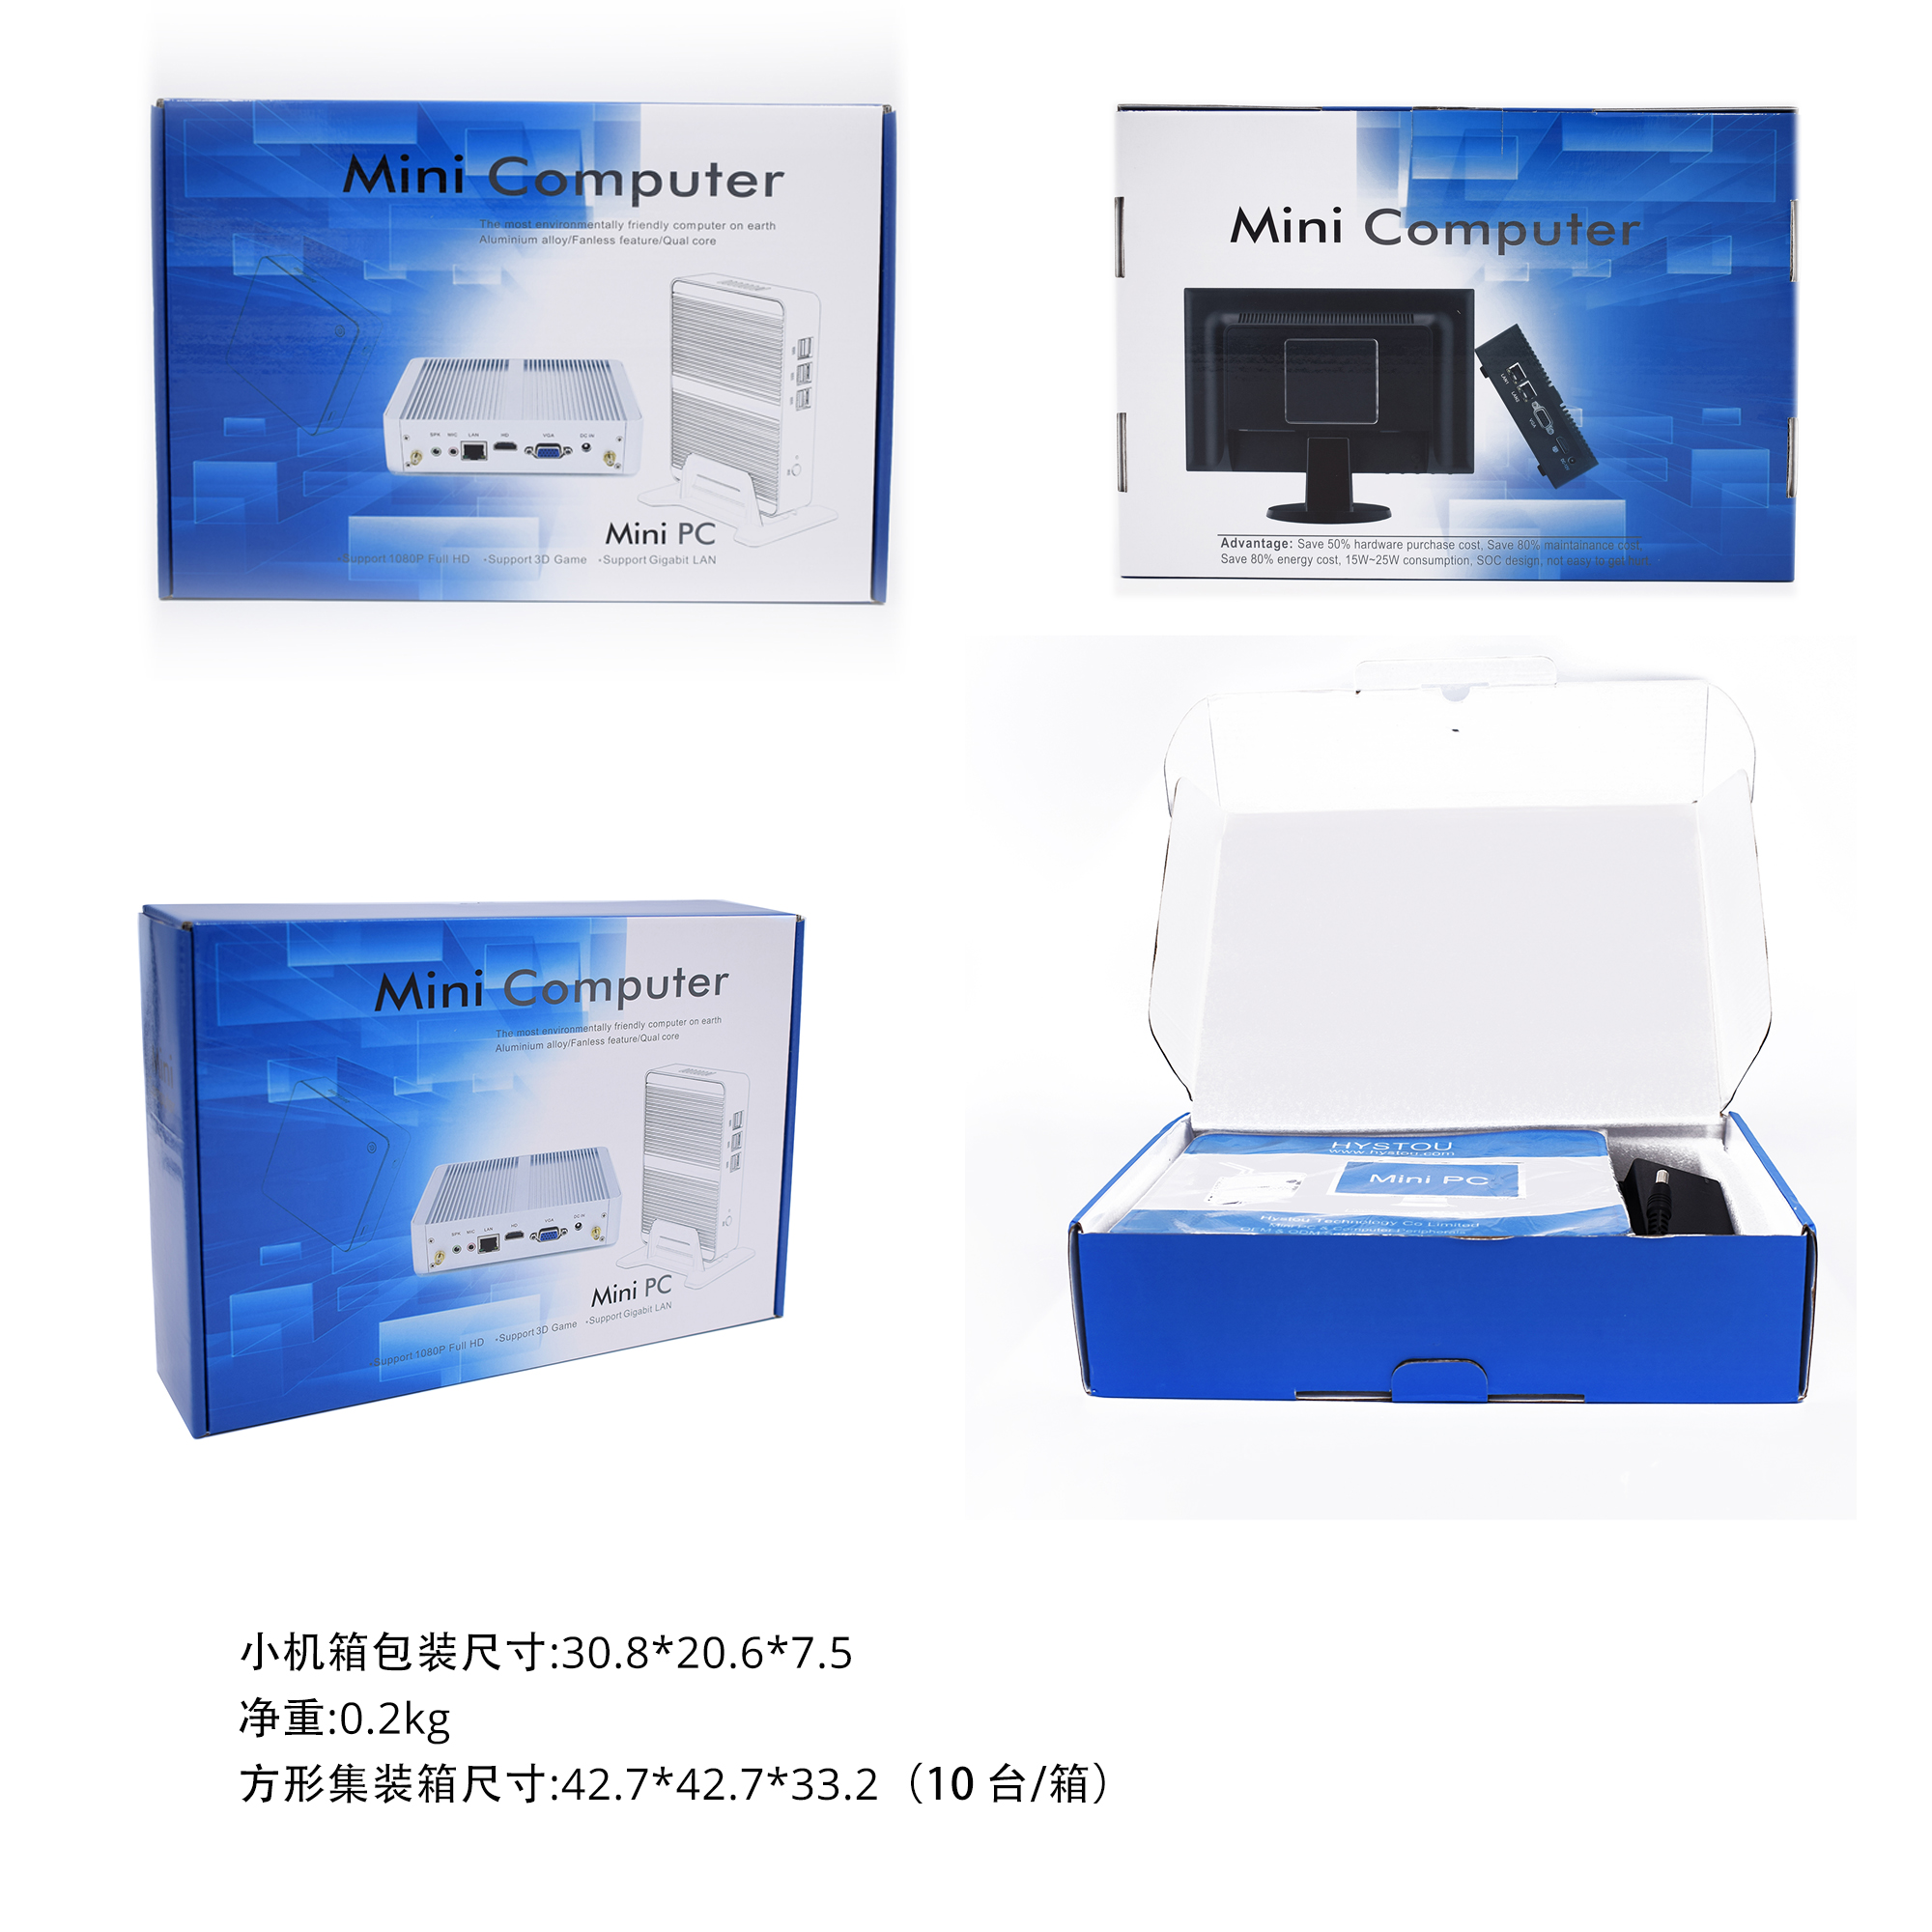 mini pc 17 I5 I3 window10 ubuntu fanless industrial desktop pocket mini pc with dvd drive custom logo